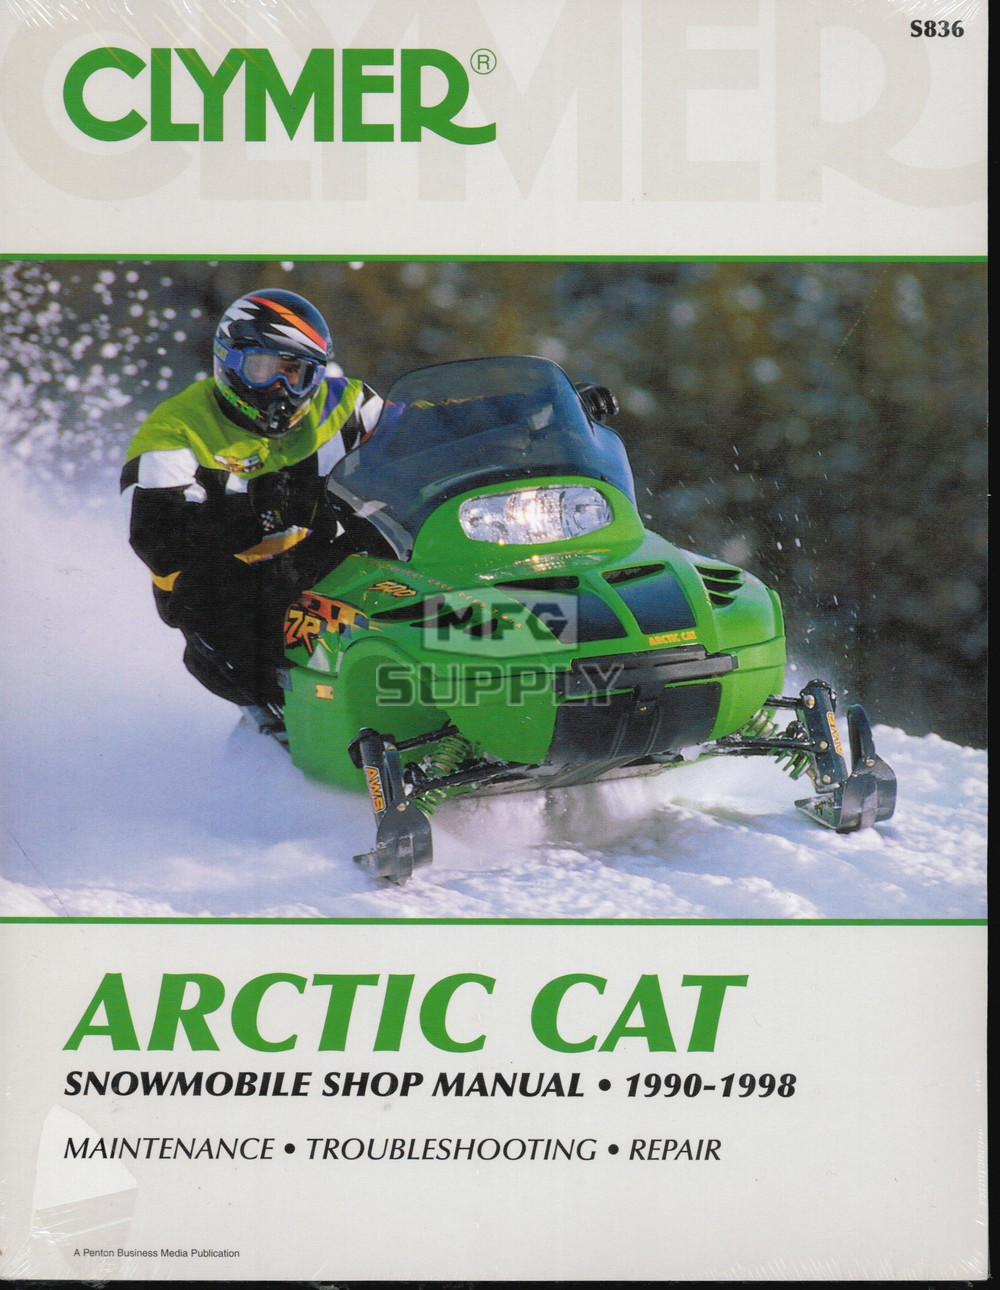 cs836 cs836 90 98 arctic cat snowmobile shop manual snowmobile parts 1997 Arctic Cat Ext 600 at bakdesigns.co